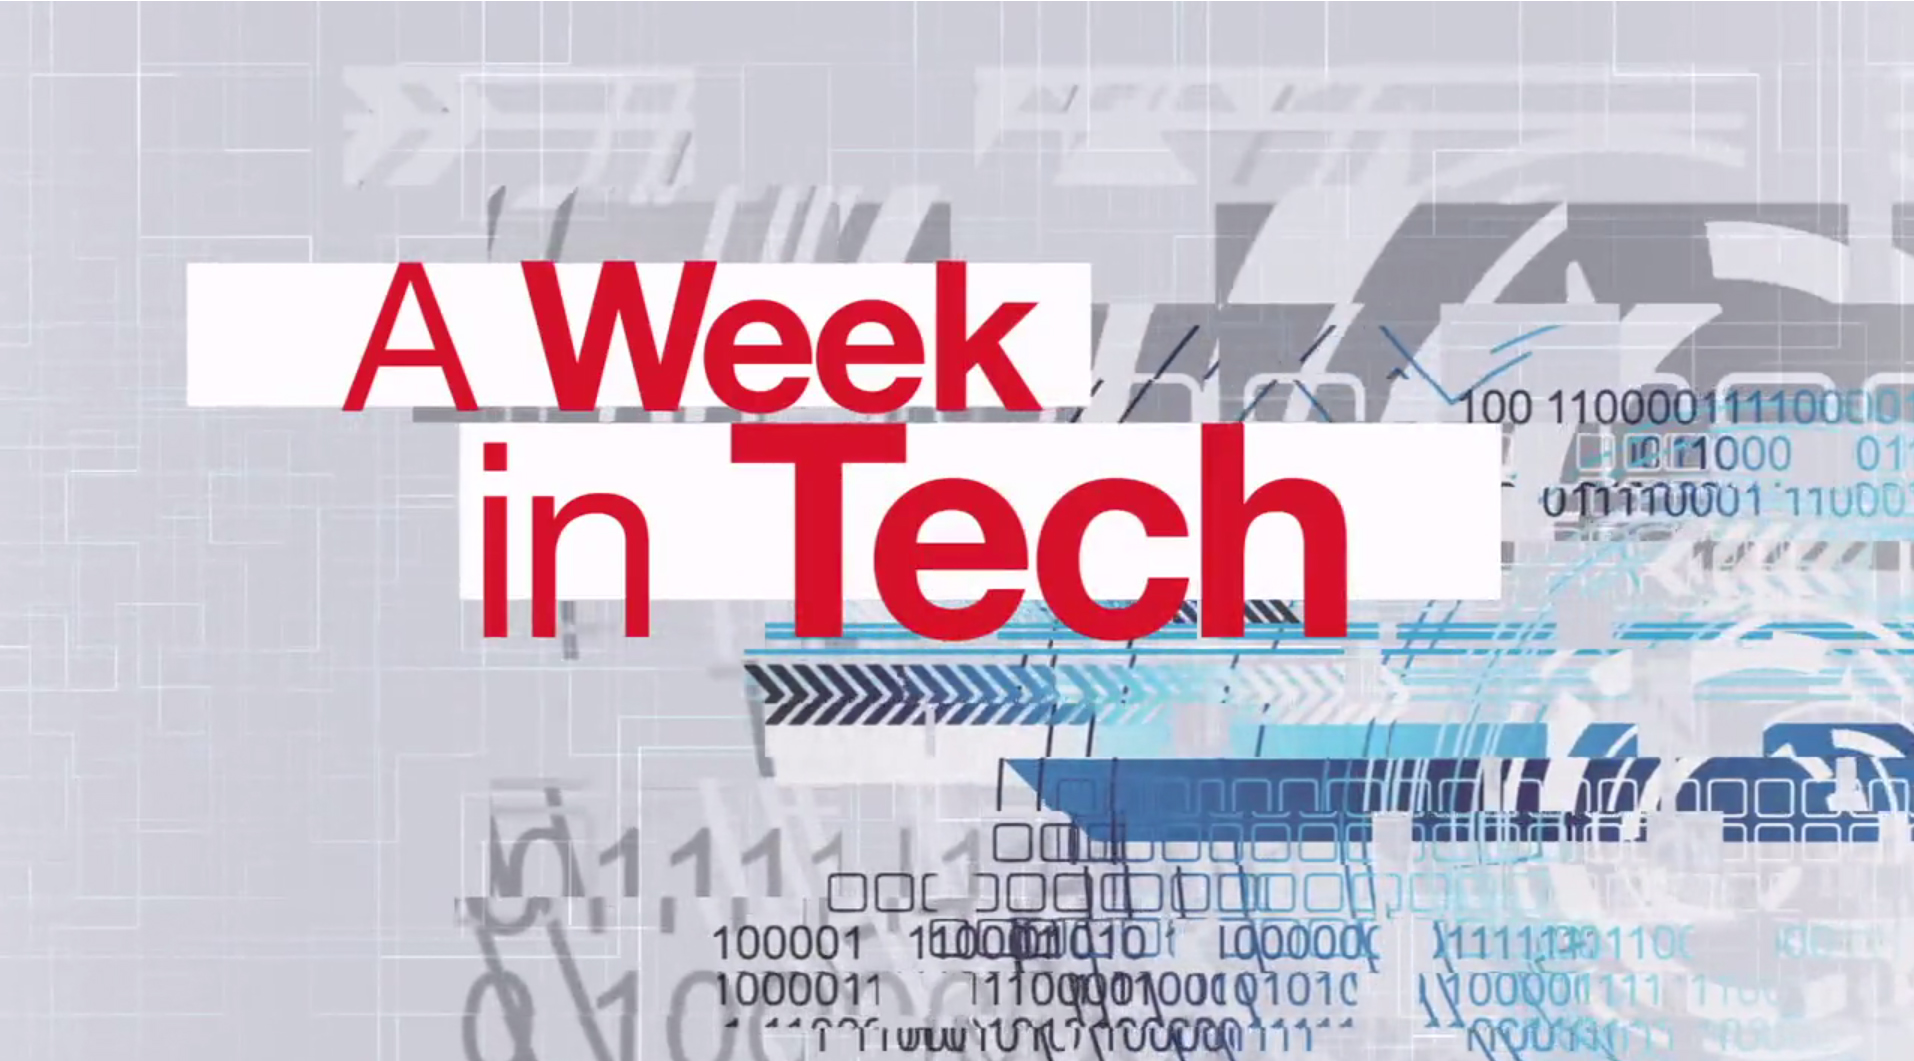 BBC A Week in Tech